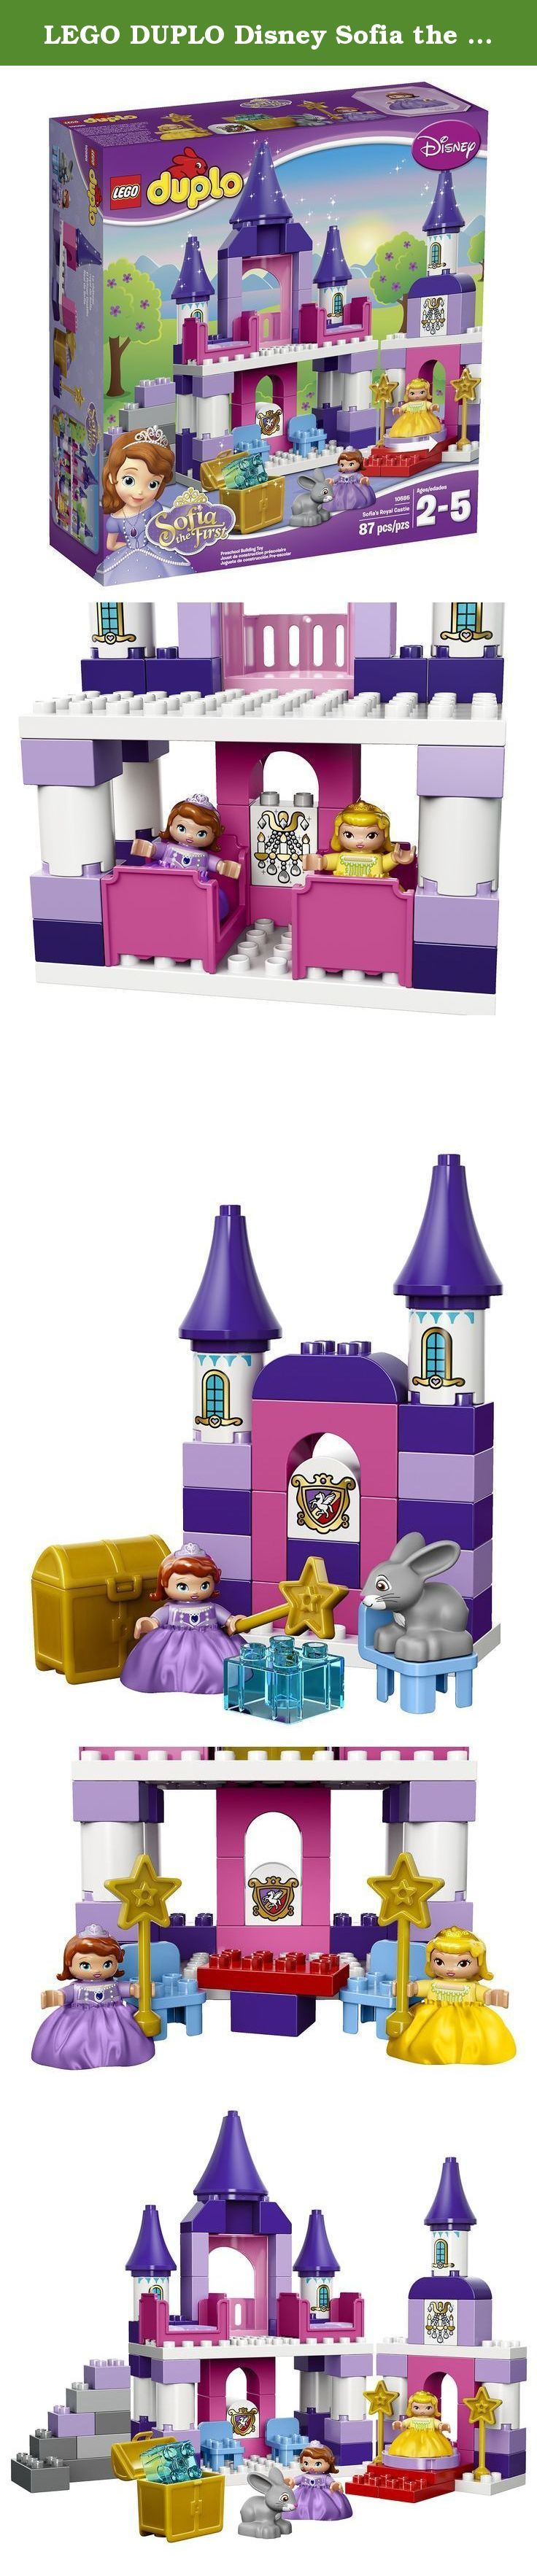 LEGO DUPLO Disney Sofia the First Royal Castle 10595. Enjoy countless royal adventures in Princess Sofia's magical world with the Disney Sofia the First Royal Castle! Sofia and her stepsister, Princess Amber, love to explore in their royal castle, where princess fun and magical surprises await around every corner! Play with Clover the rabbit in the throne room and discover the treasure chest in the basement, before dancing the night away on the revolving dance floor. Then help Sofia and...